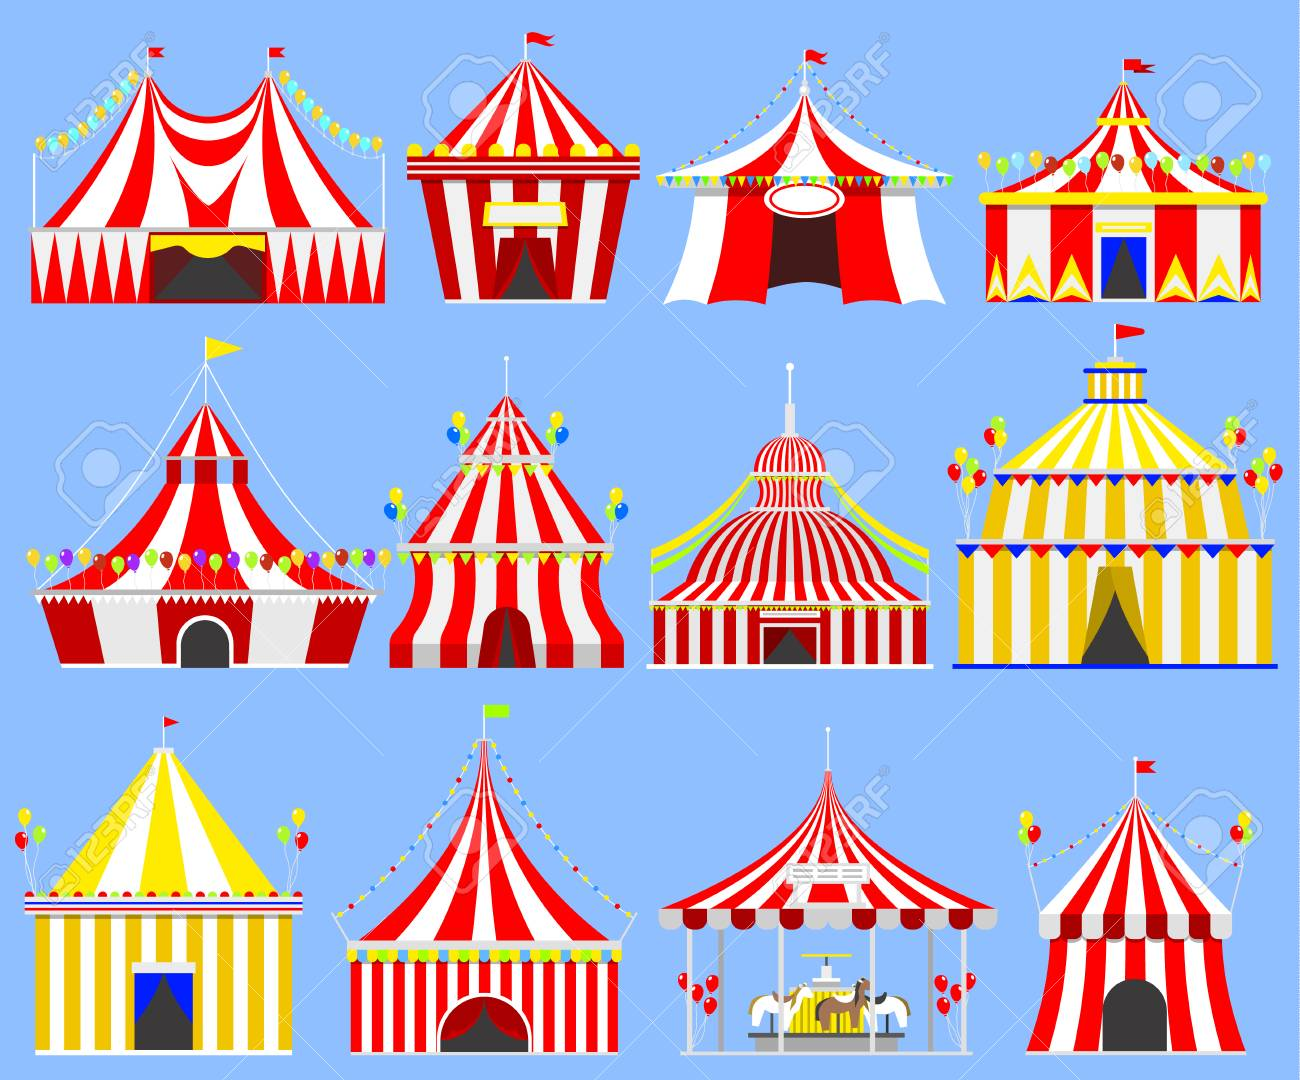 Circus tent marquee marquee with stripes and flags carnival entertainment amusement lelements flat vector. Circus  sc 1 st  123RF Stock Photos & Circus Tent Marquee Marquee With Stripes And Flags Carnival ...